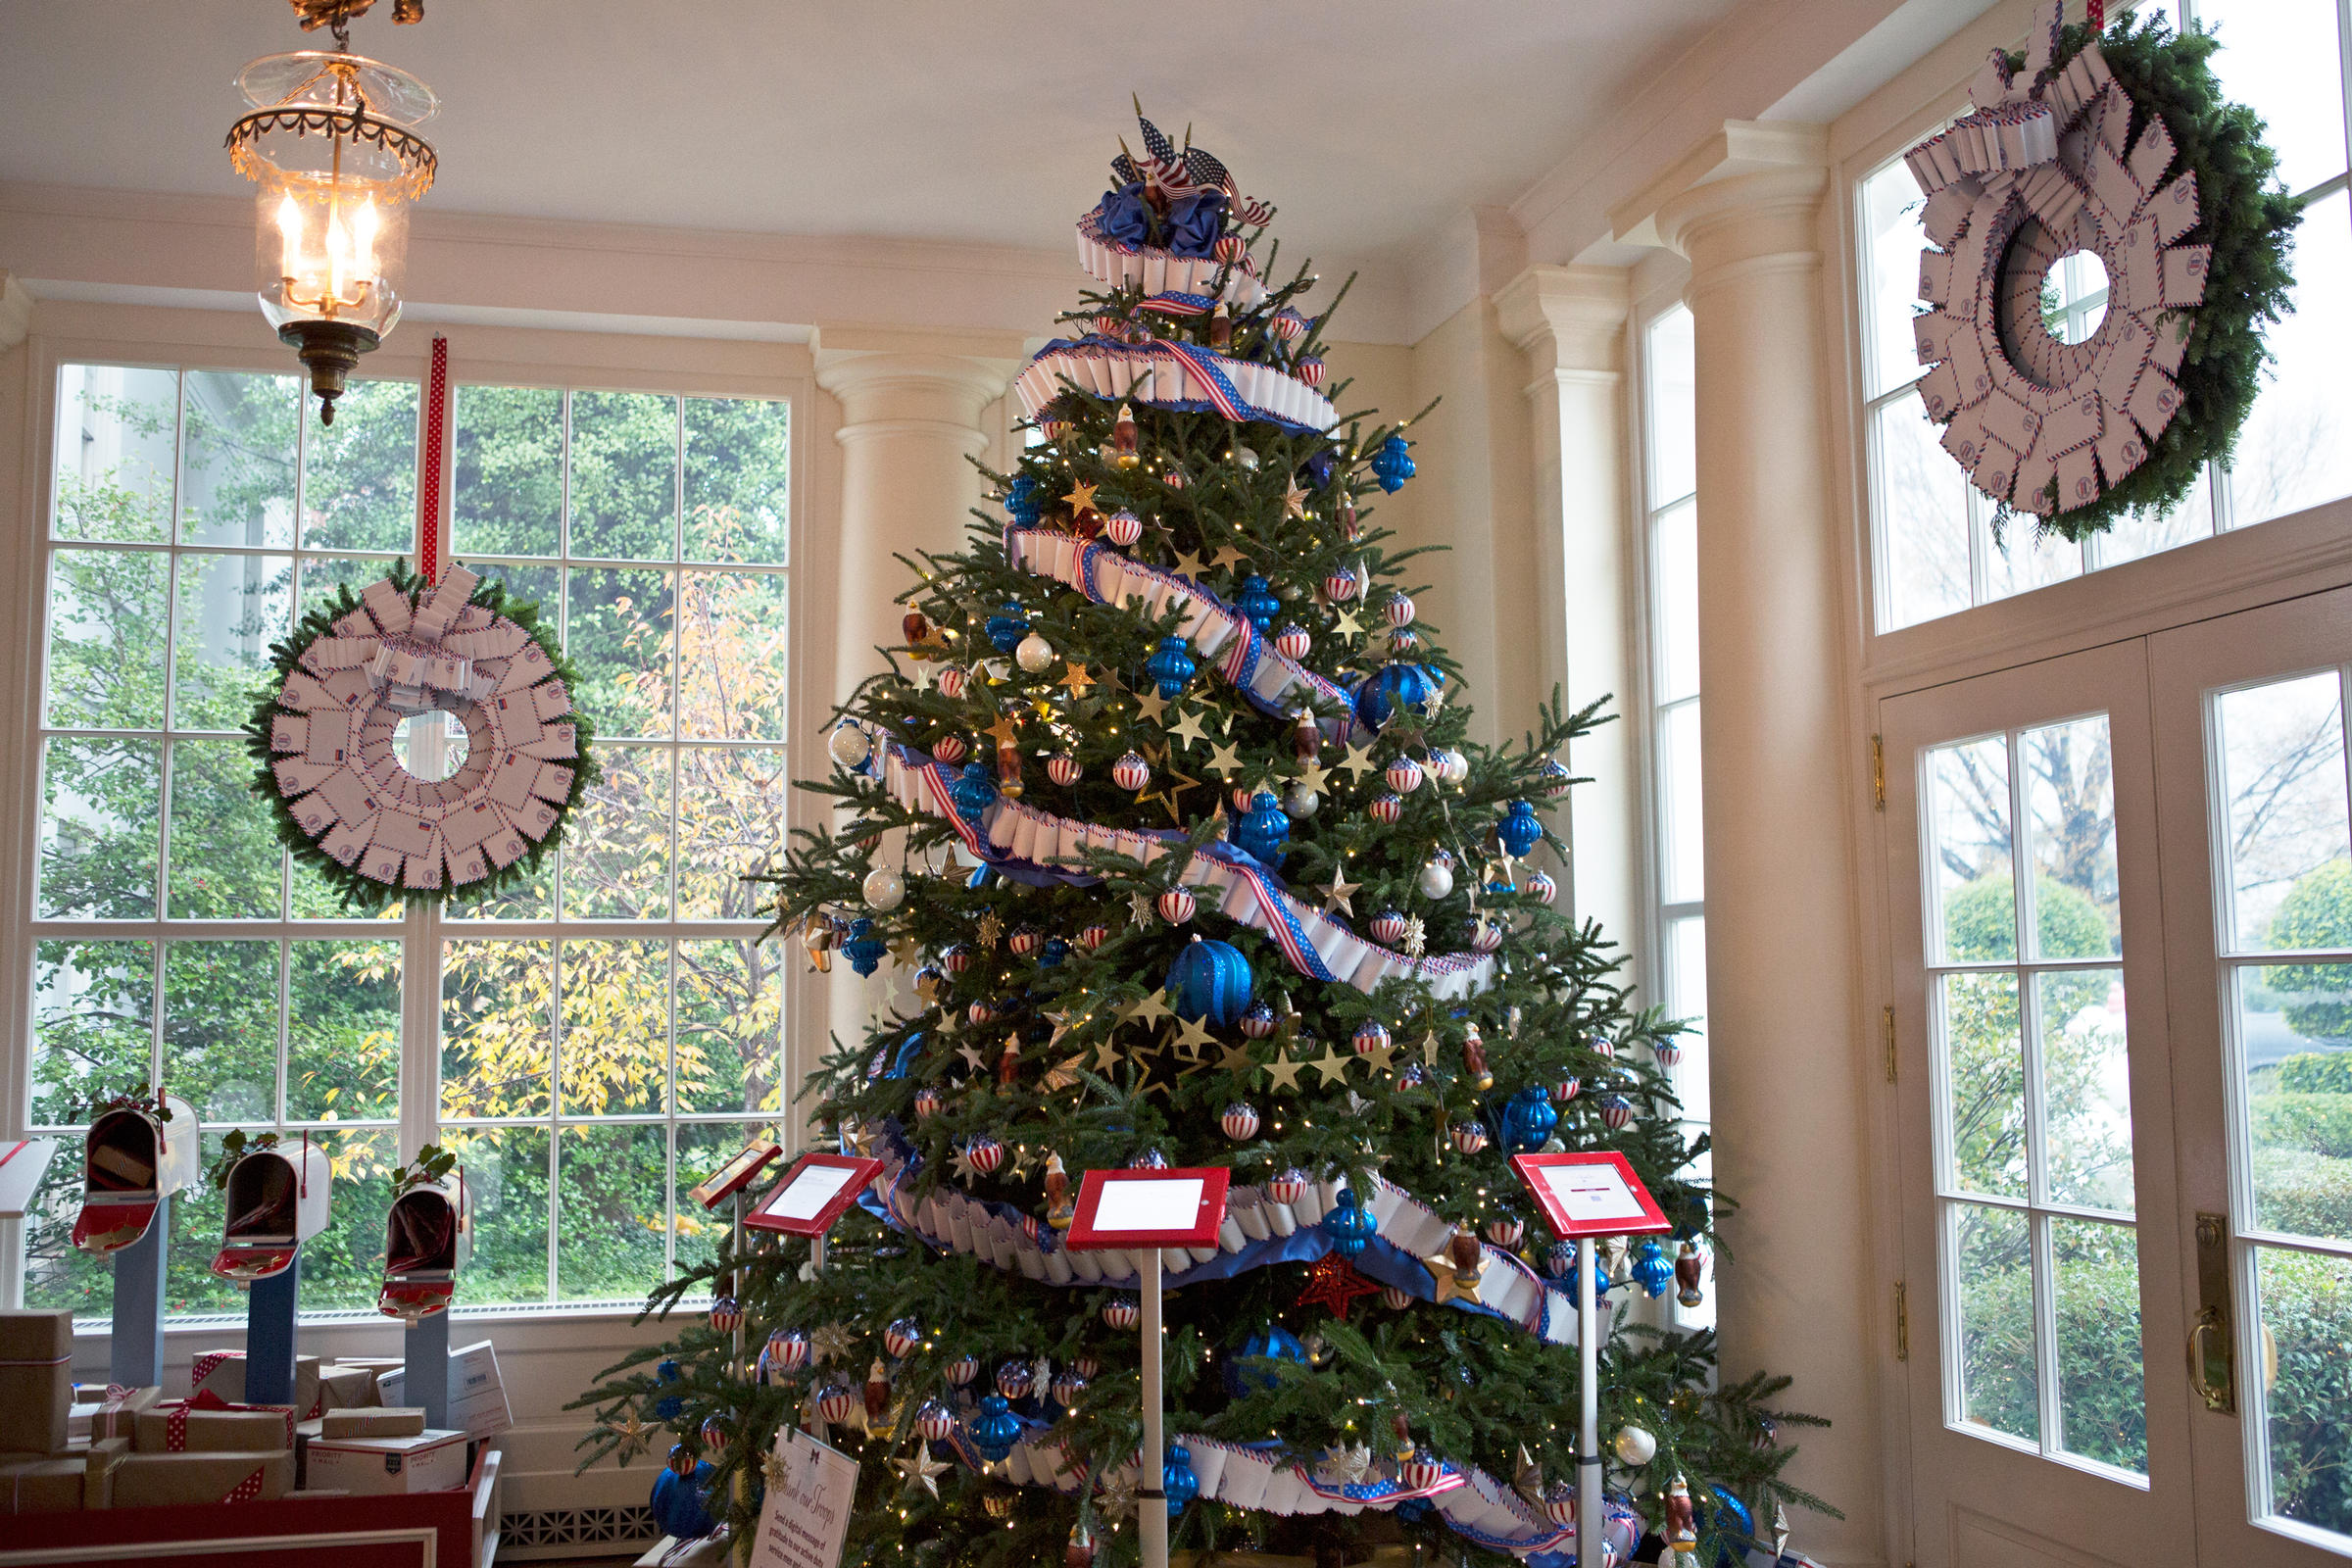 White house christmas ornaments by year - The White House Is Decked Out With 62 Christmas Trees And More Than 70 000 Ornaments This View Slideshow 10 Of 12